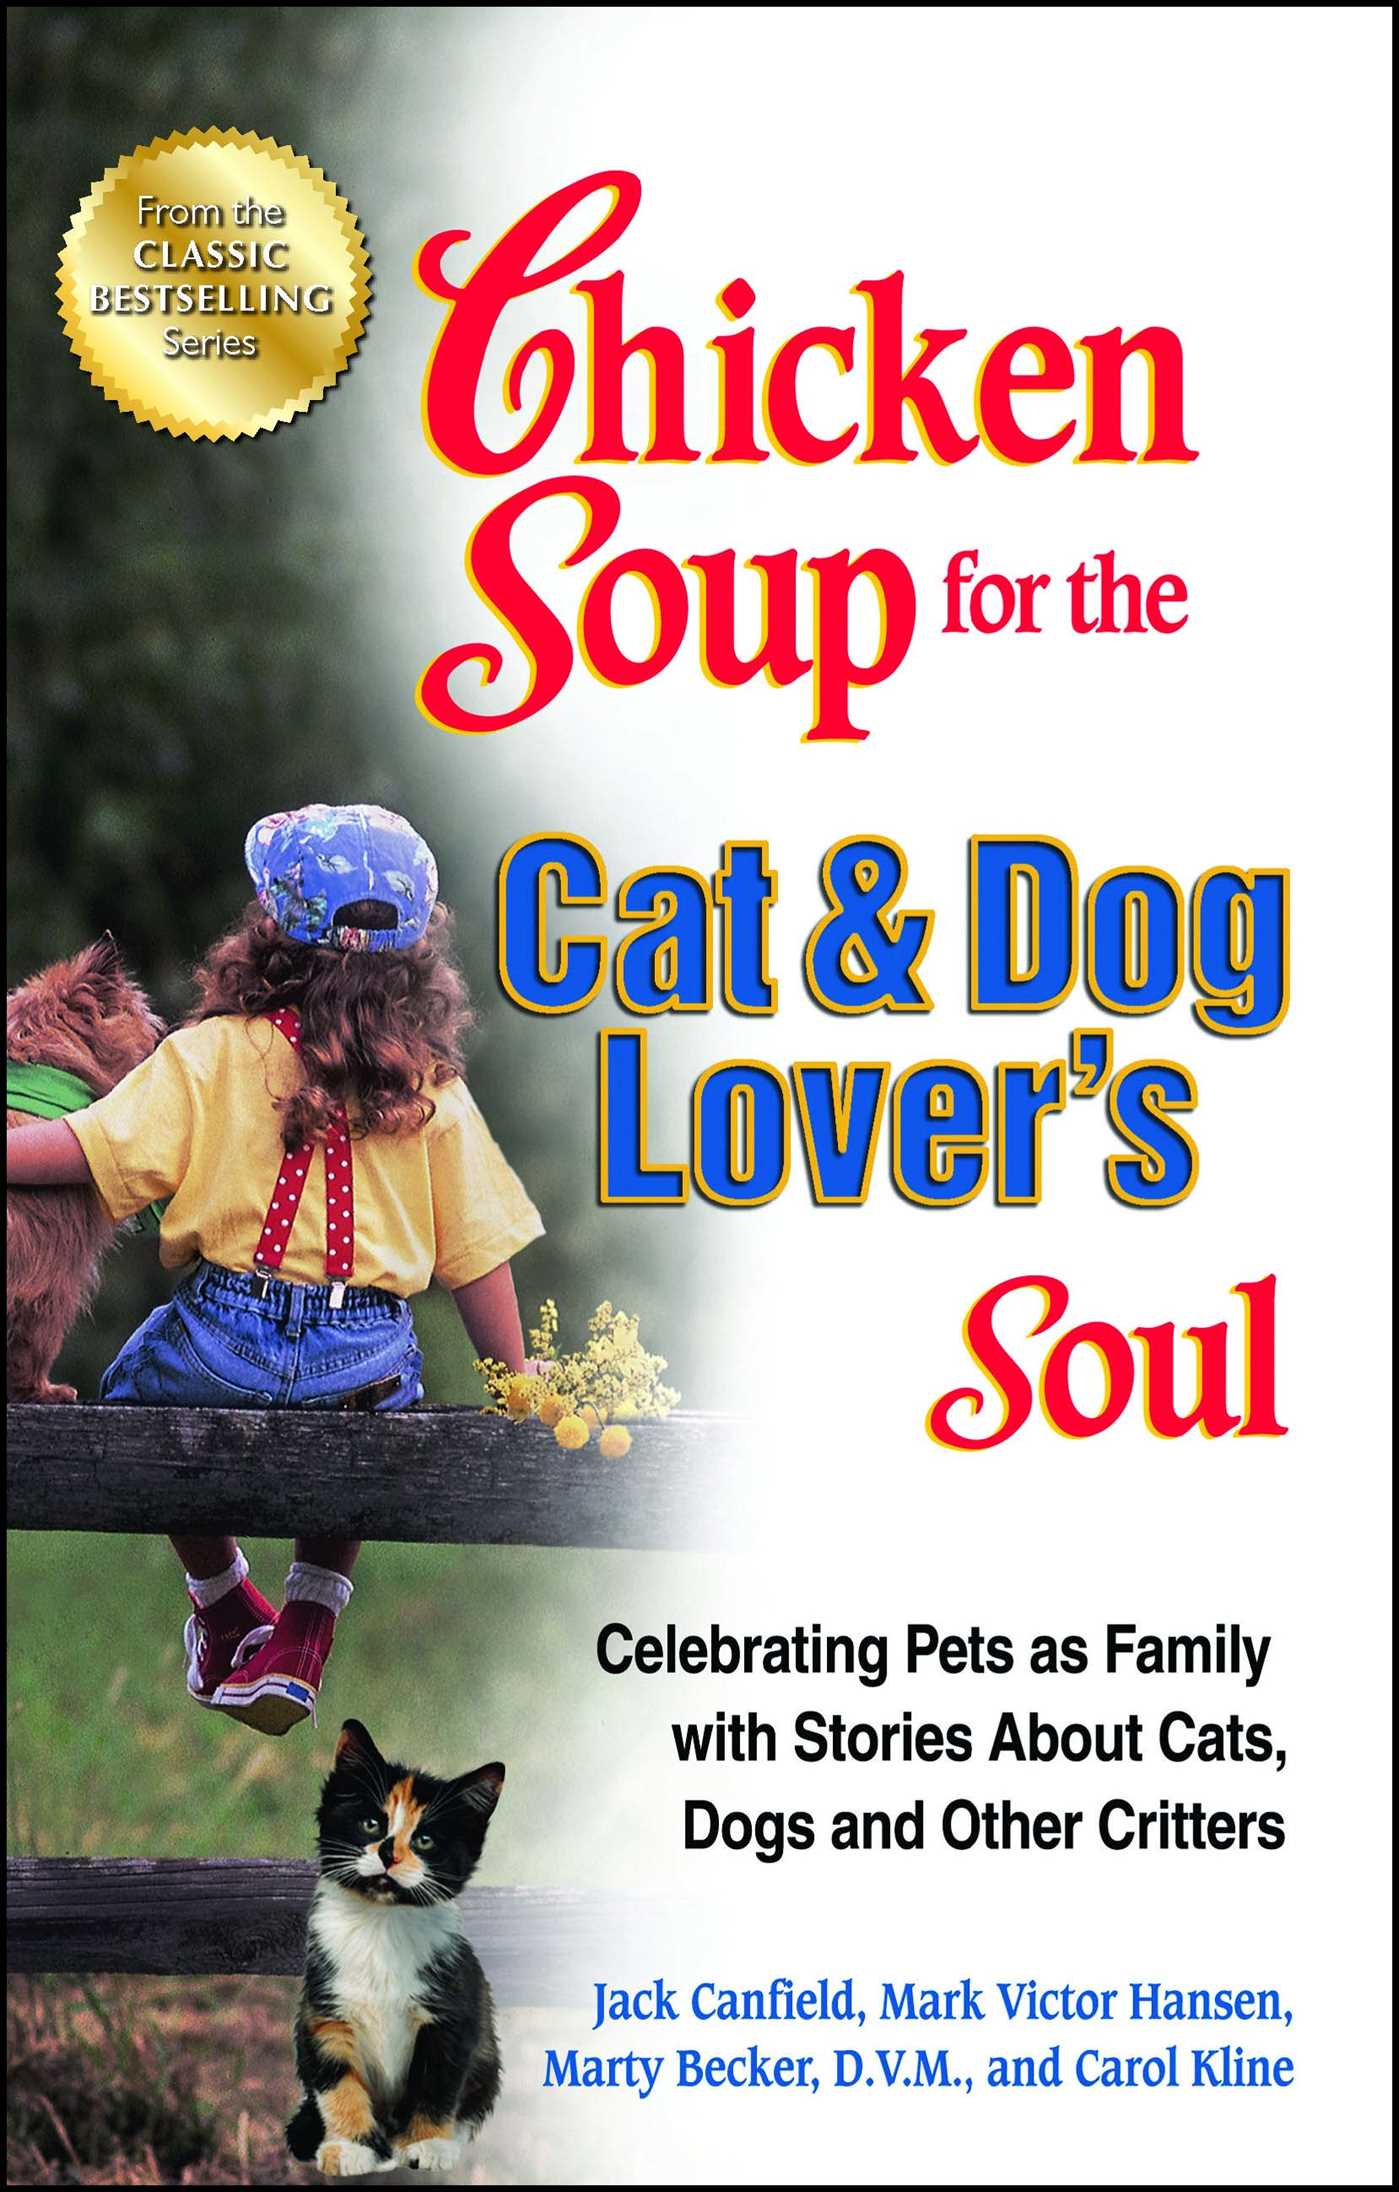 Chicken soup for the cat dog lovers soul 9781623610869 hr